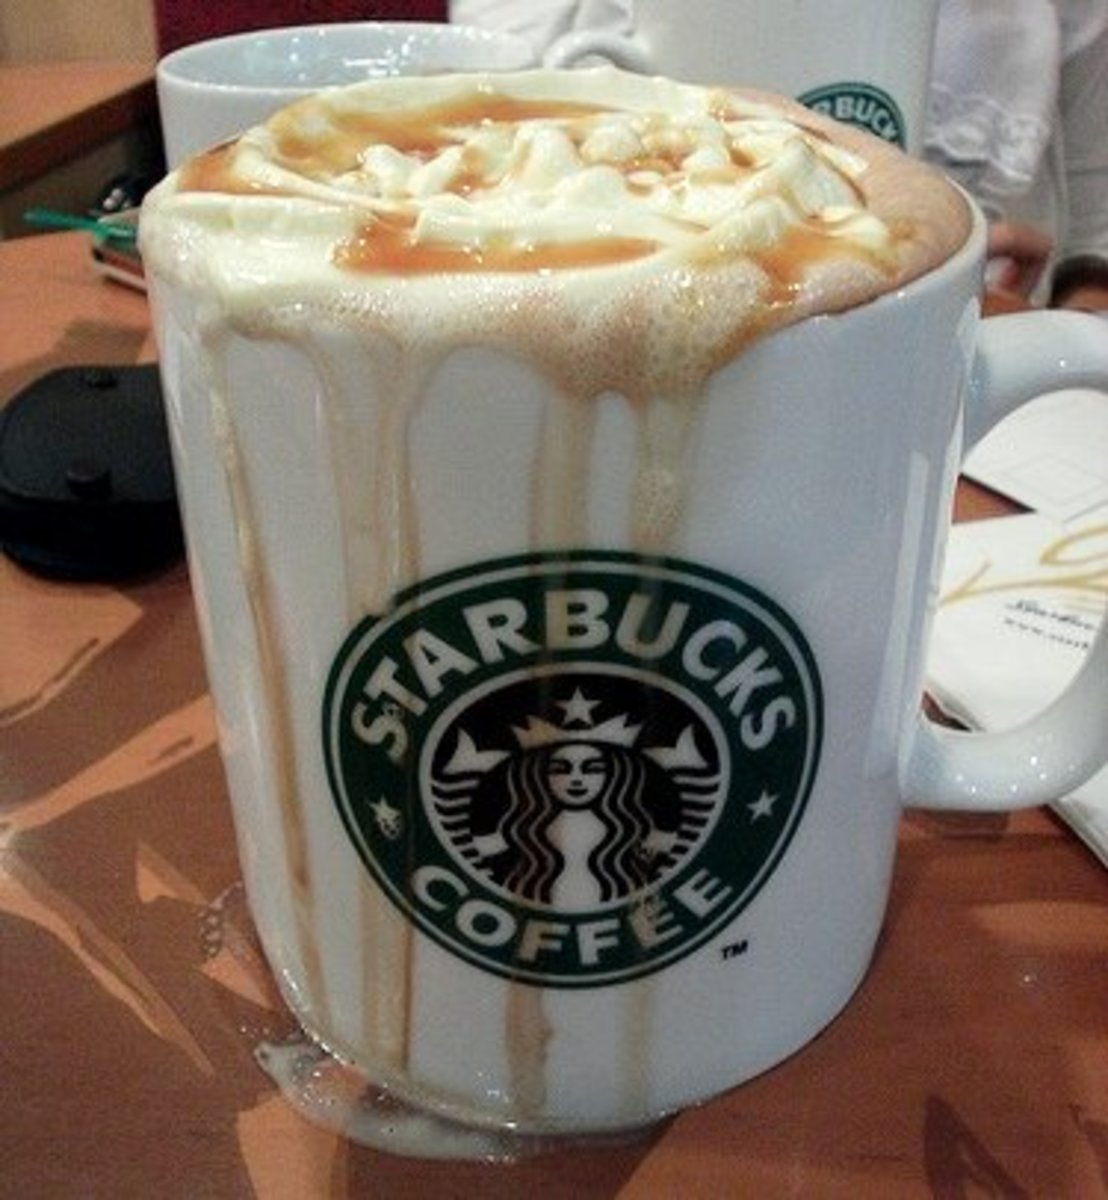 All that caramel and whipped cream may be delicious, but it comes at a price!